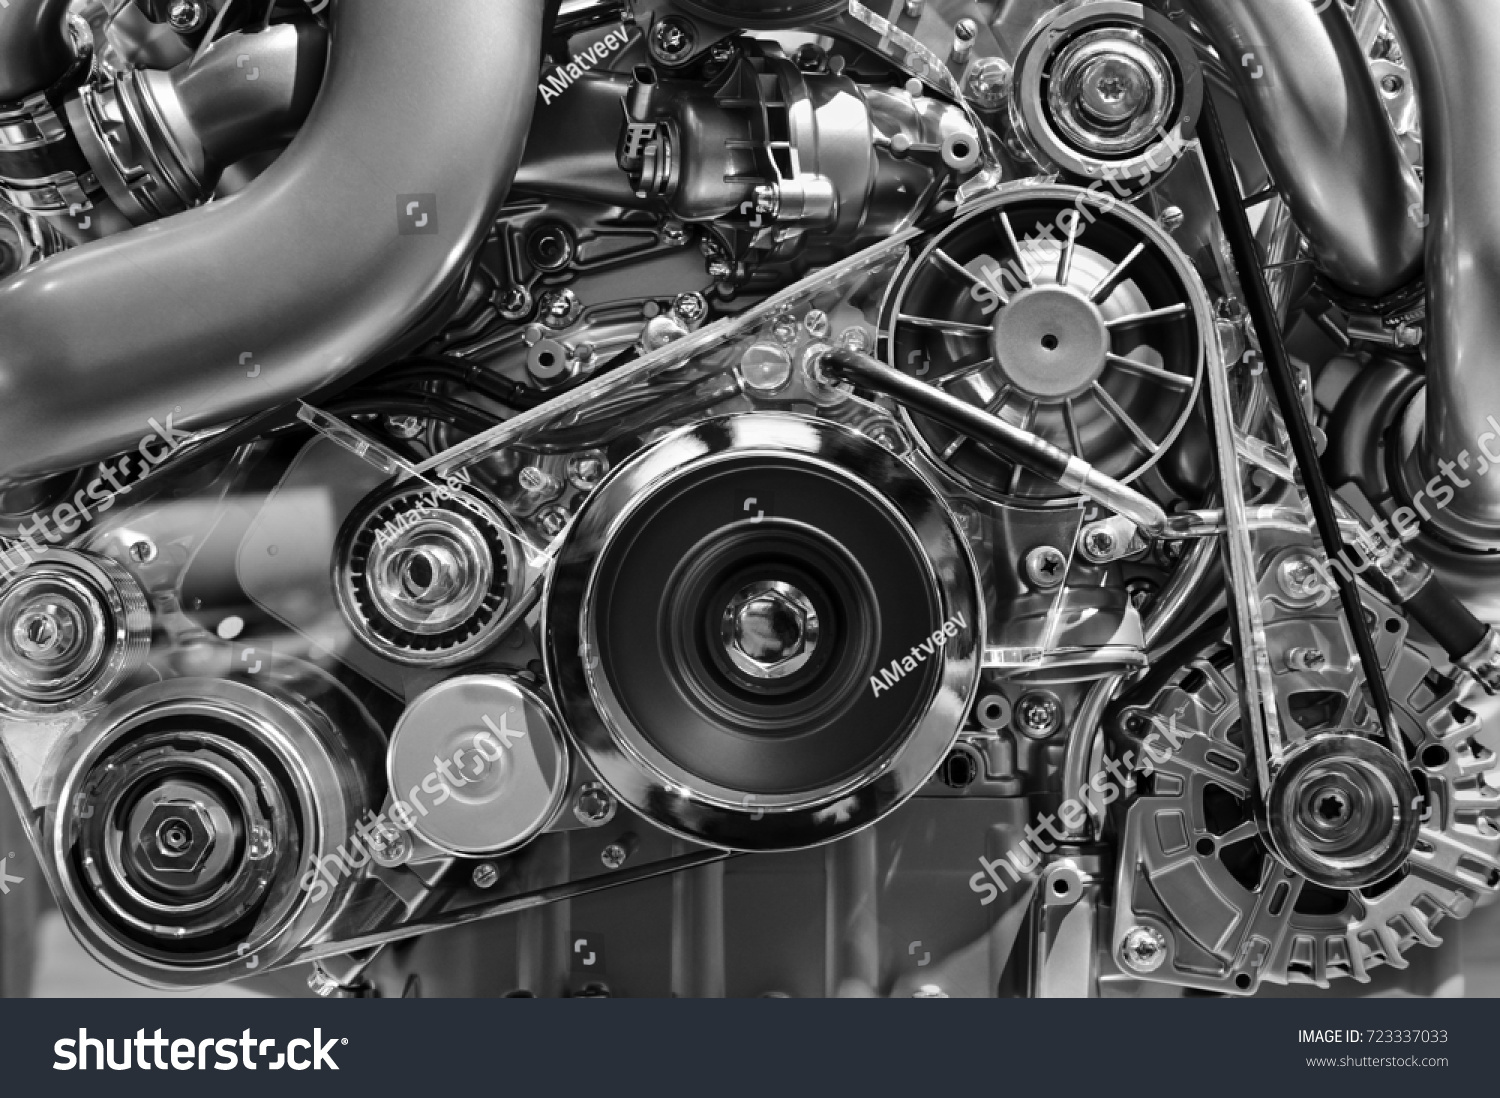 Car Engine Concept Modern Vehicle Motor Stock Photo 723337033 ...